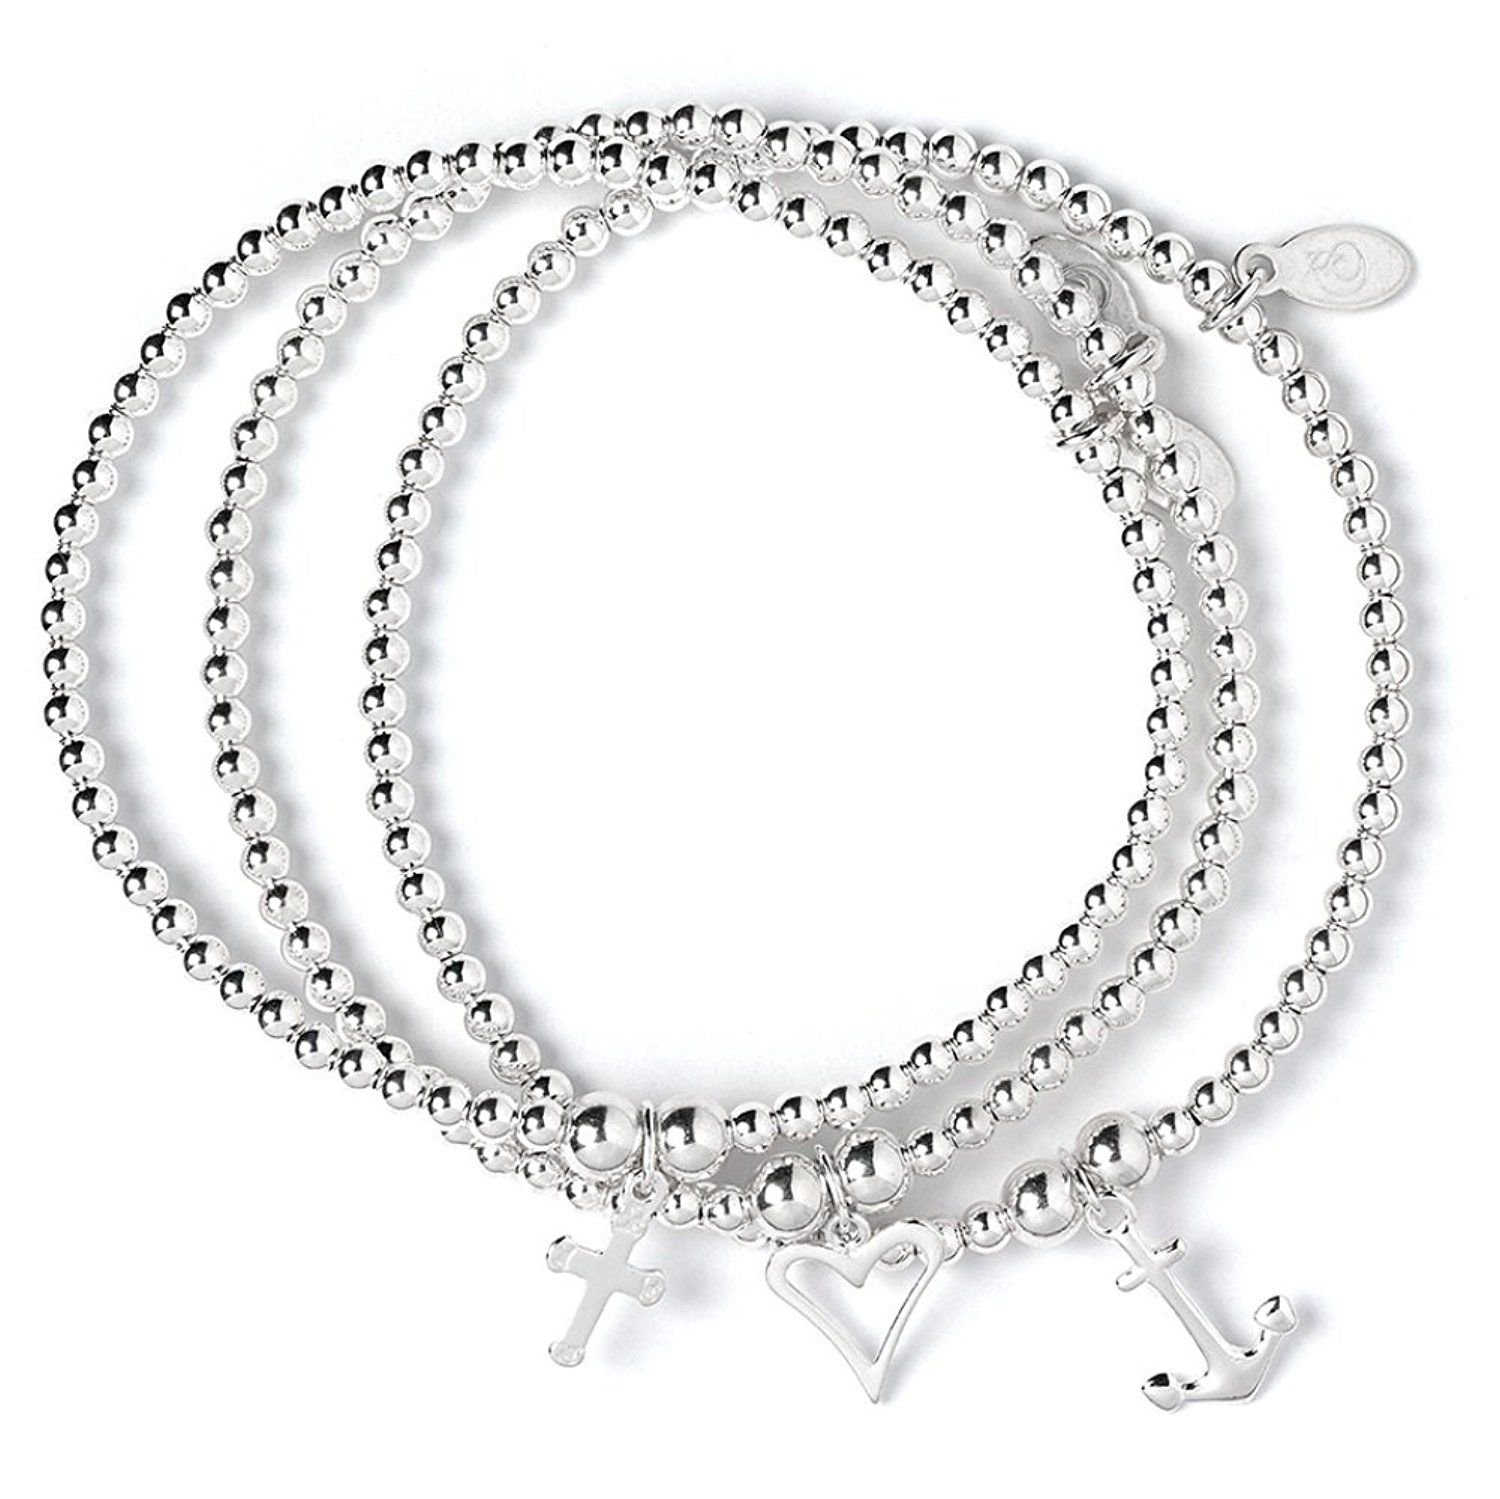 Set of 3 Sterling Silver 'Rice & Noodle' Ball Bead Bracelets- Love Hope & Charity xD6vAbvZ